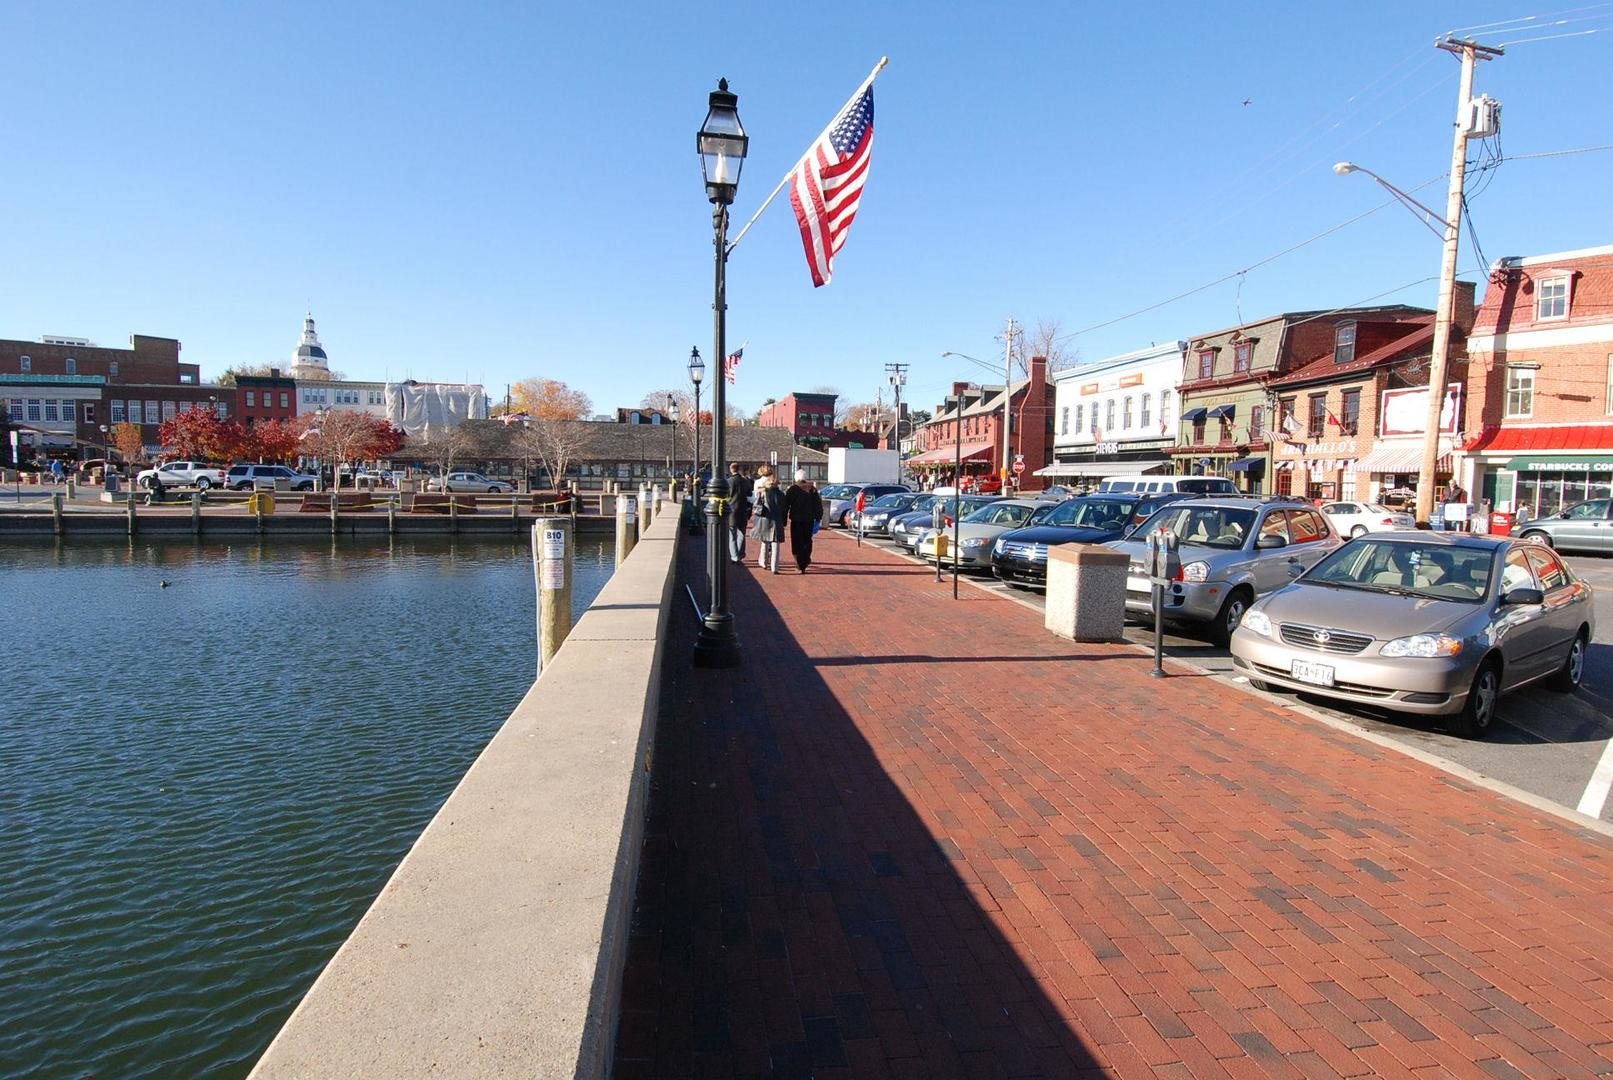 Annapolis Waterfront Shops and Restaurants